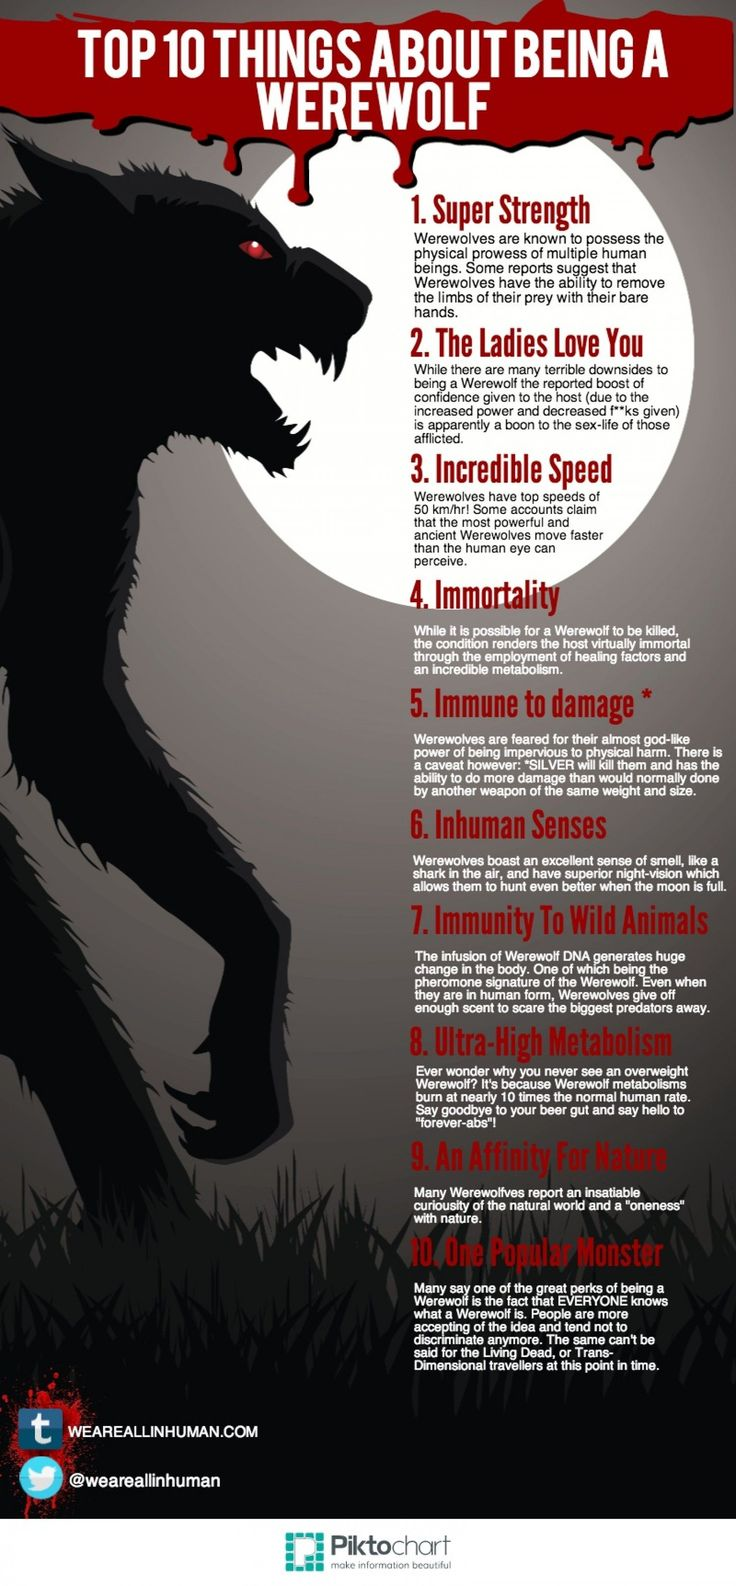 Not all true (looking at you, immortality and invincibility) but still fun. Top 10 Things About Being a Werewolf Infographic